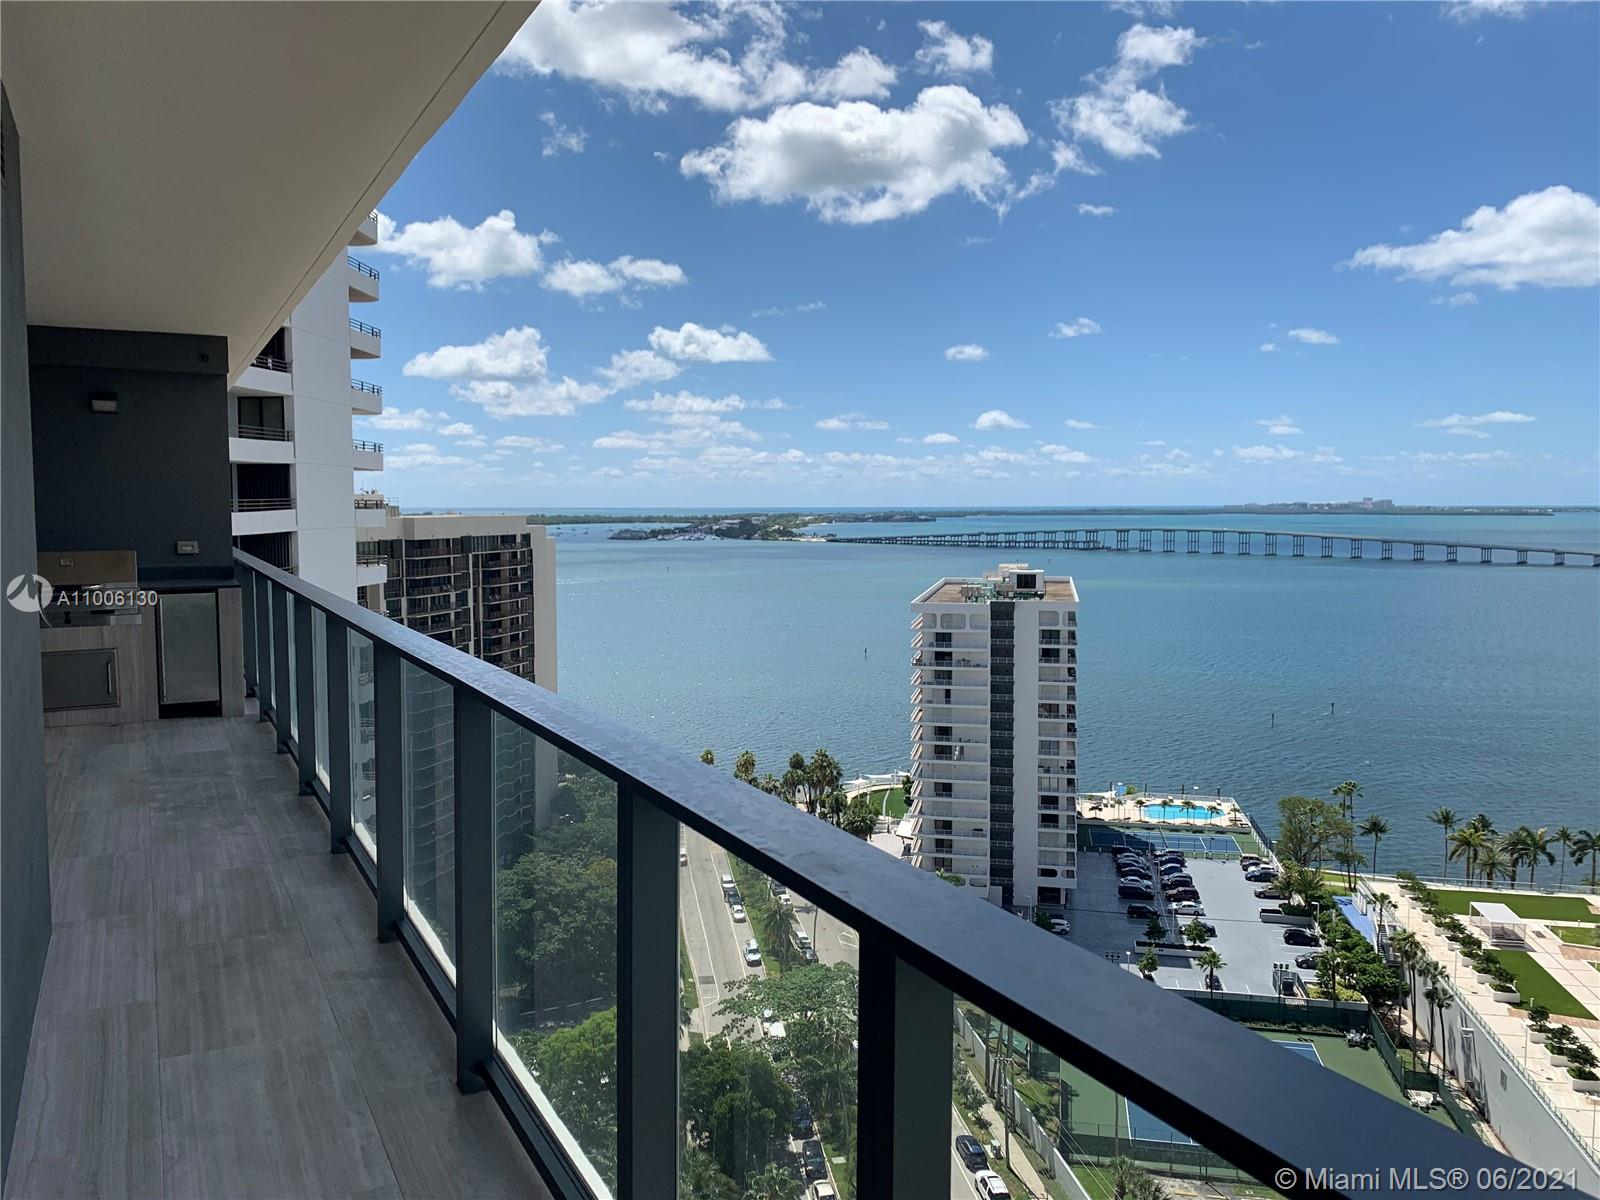 Beautiful and spacious 1 bed 1.5 bath with high-end finishes, european kitchen with top of the line appliances, electric blinds, large balcony with outdoor kitchen and spectacular water and city views.  Very luxurious building full service and great amenities. Excellent location on Brickell Ave. Ready to move in.